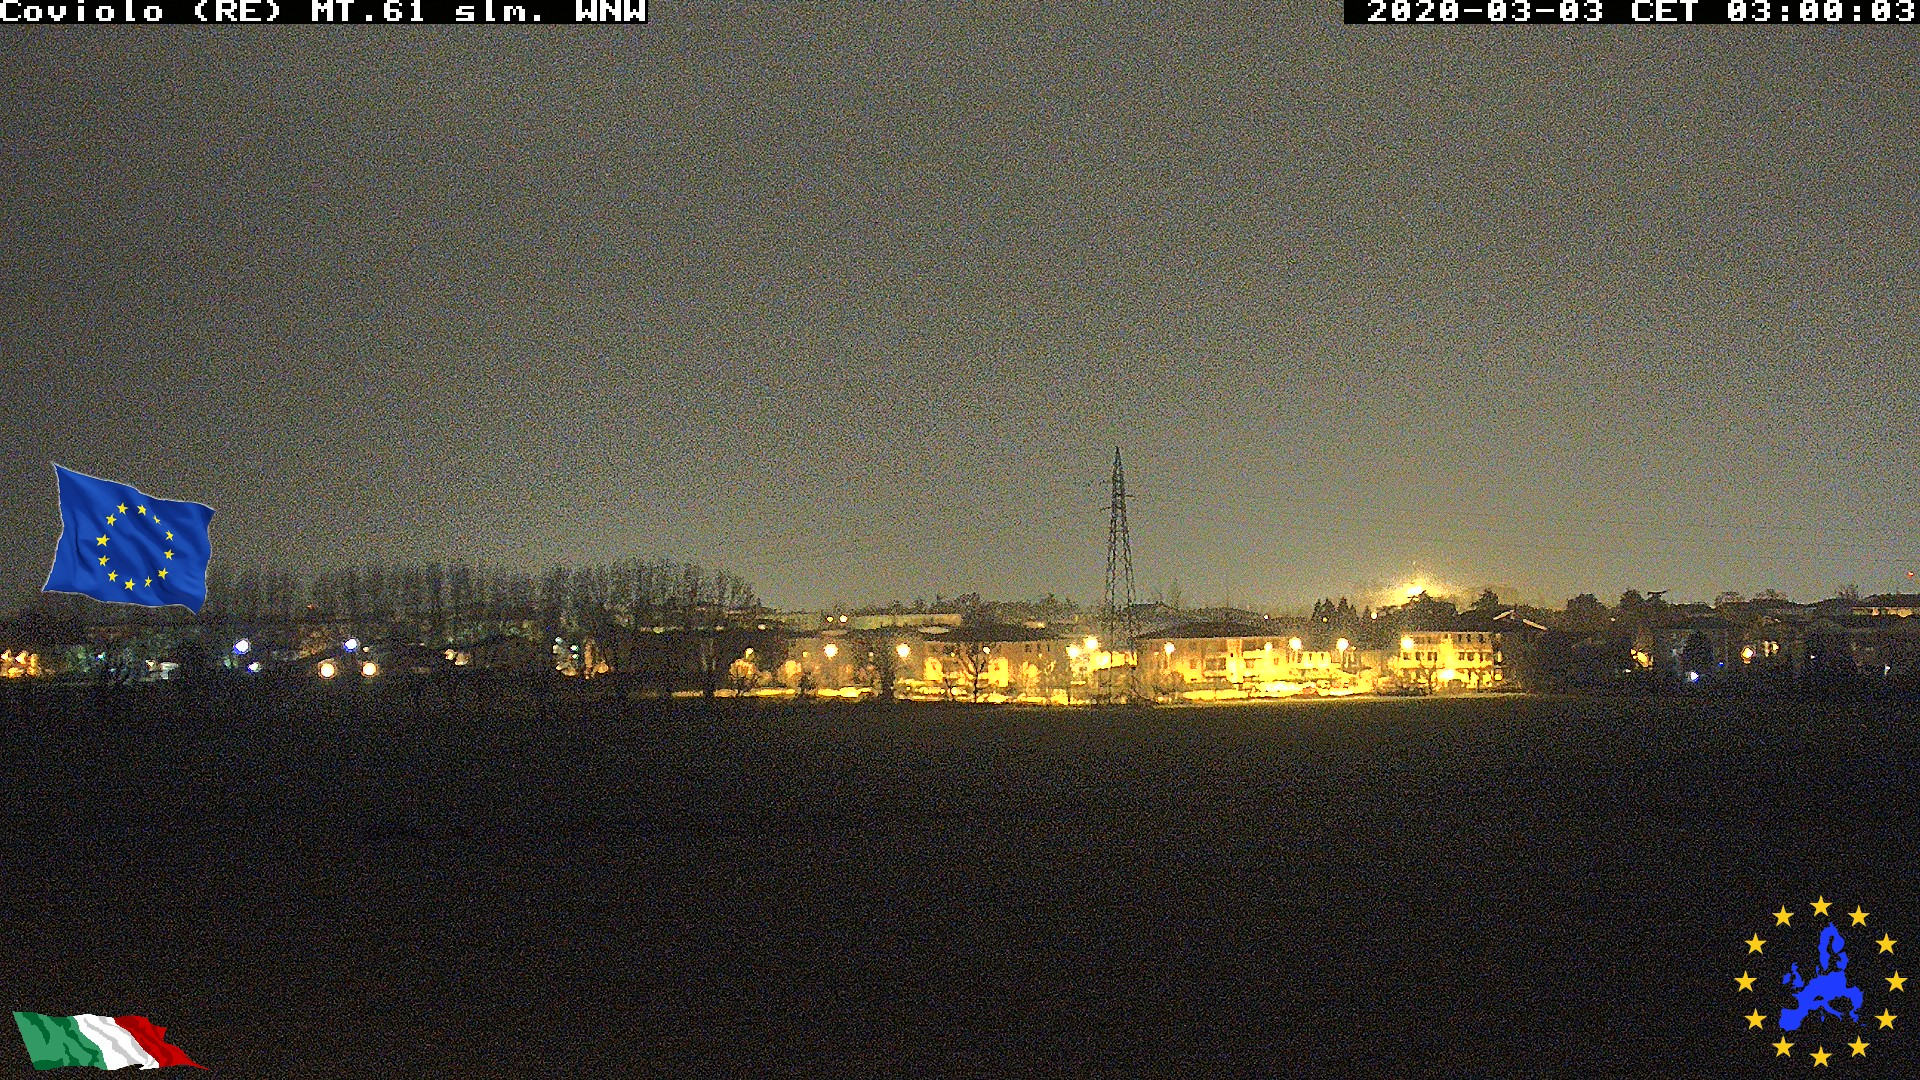 webcam Coviolo, Reggio Emilia (RE)